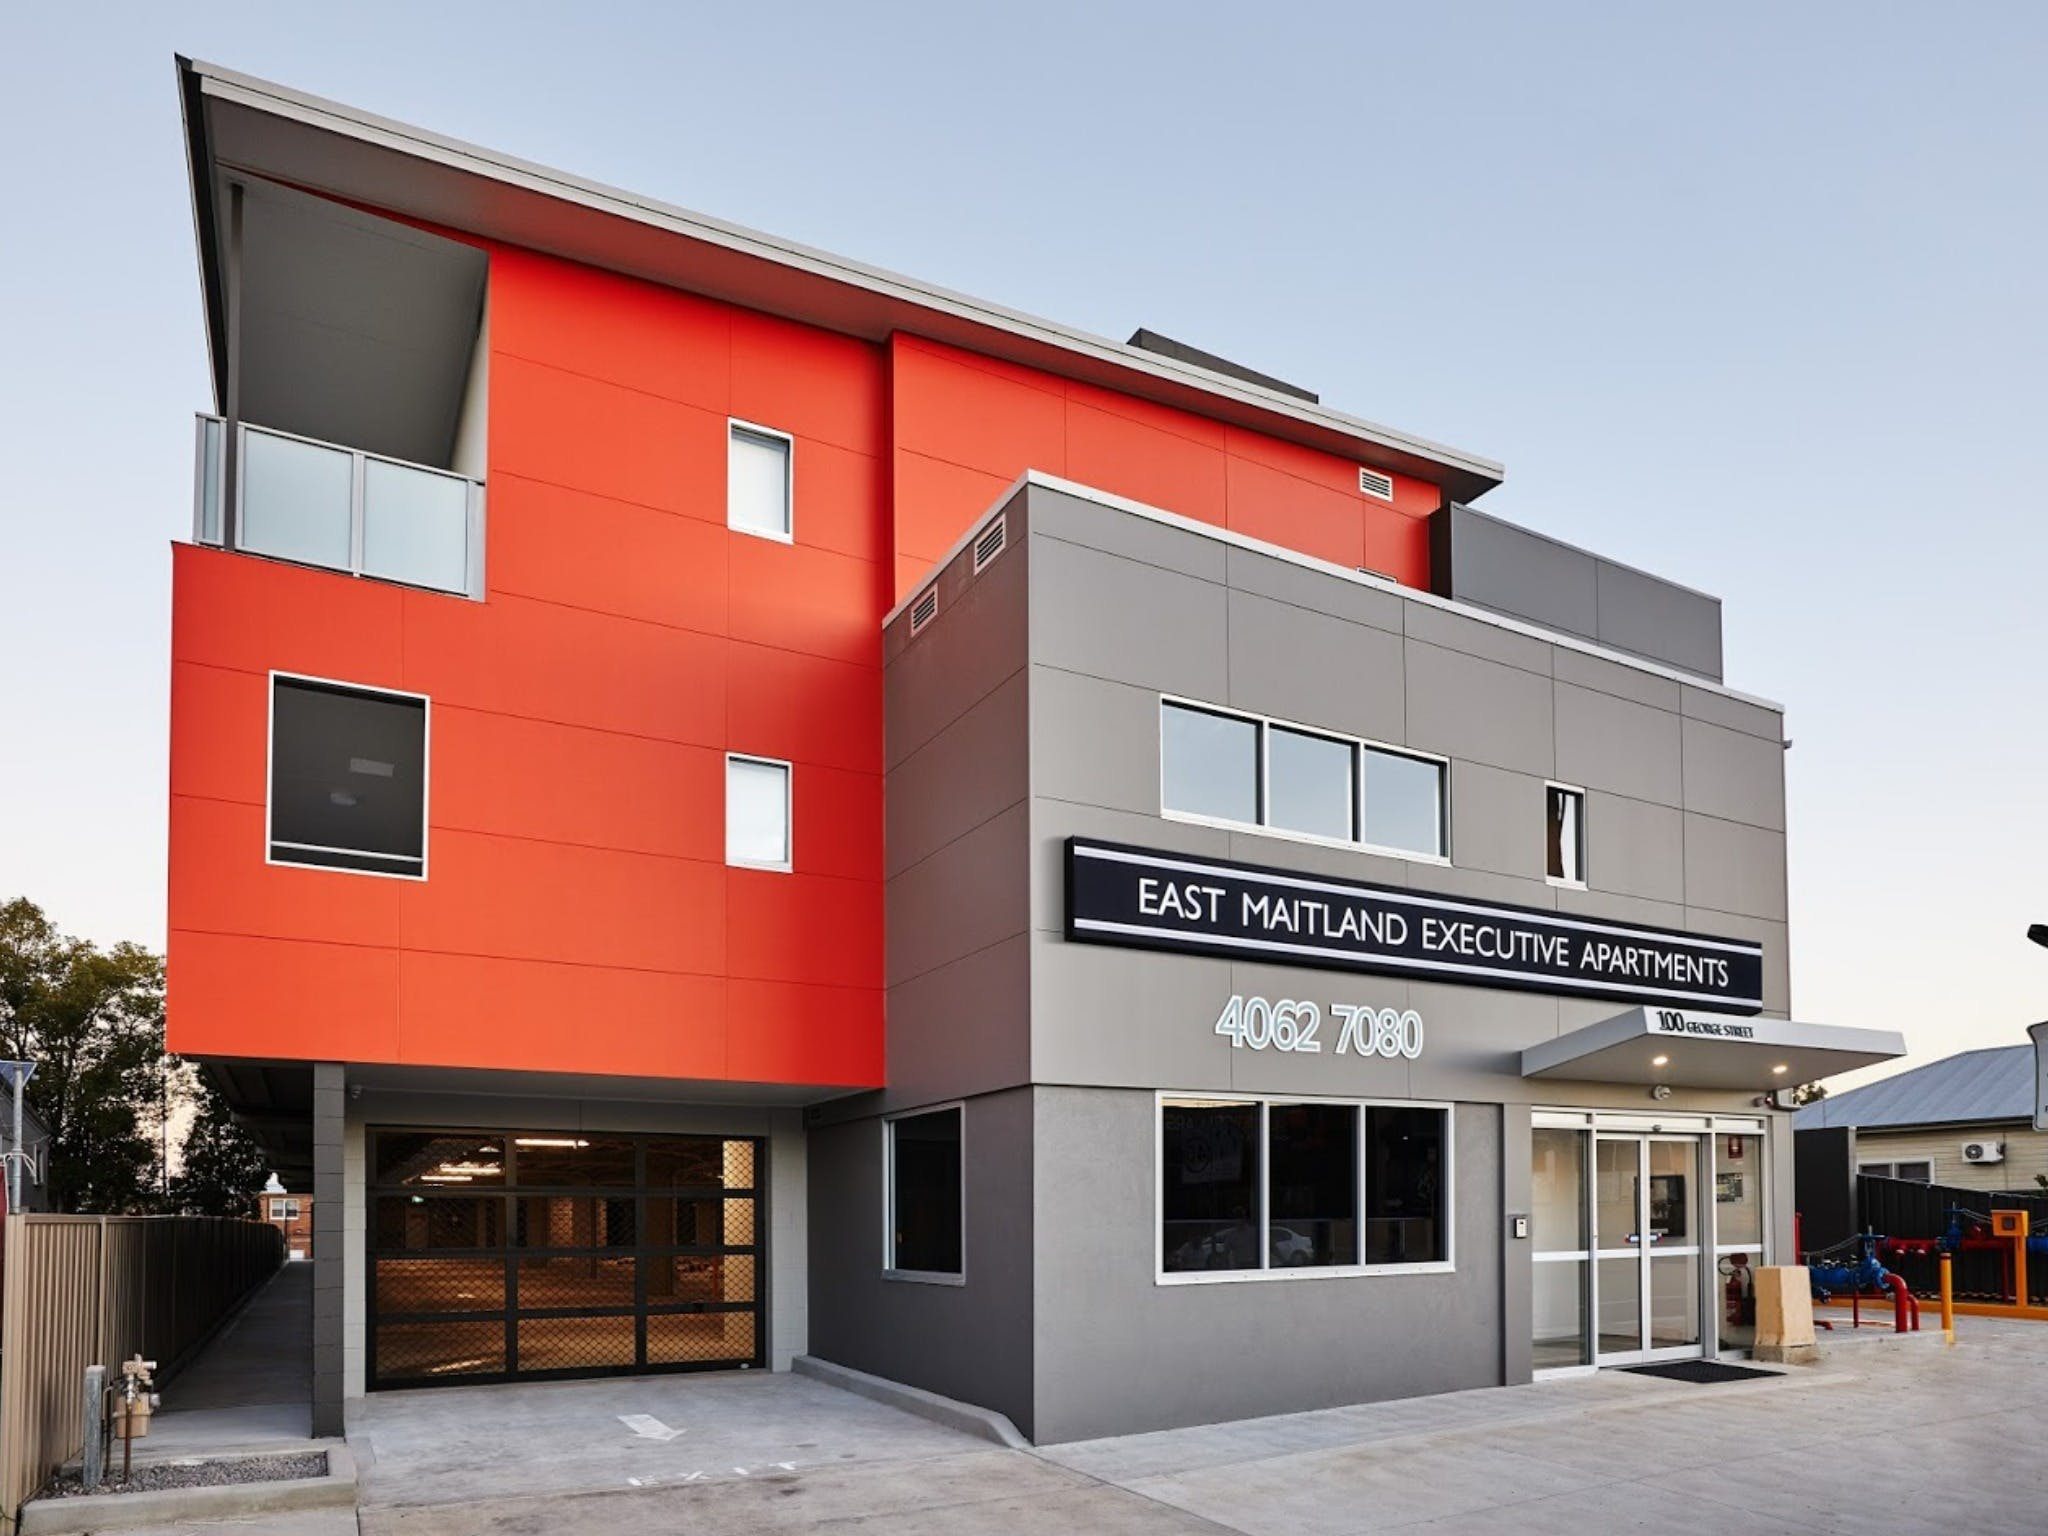 East Maitland Executive Apartments - Whitsundays Accommodation